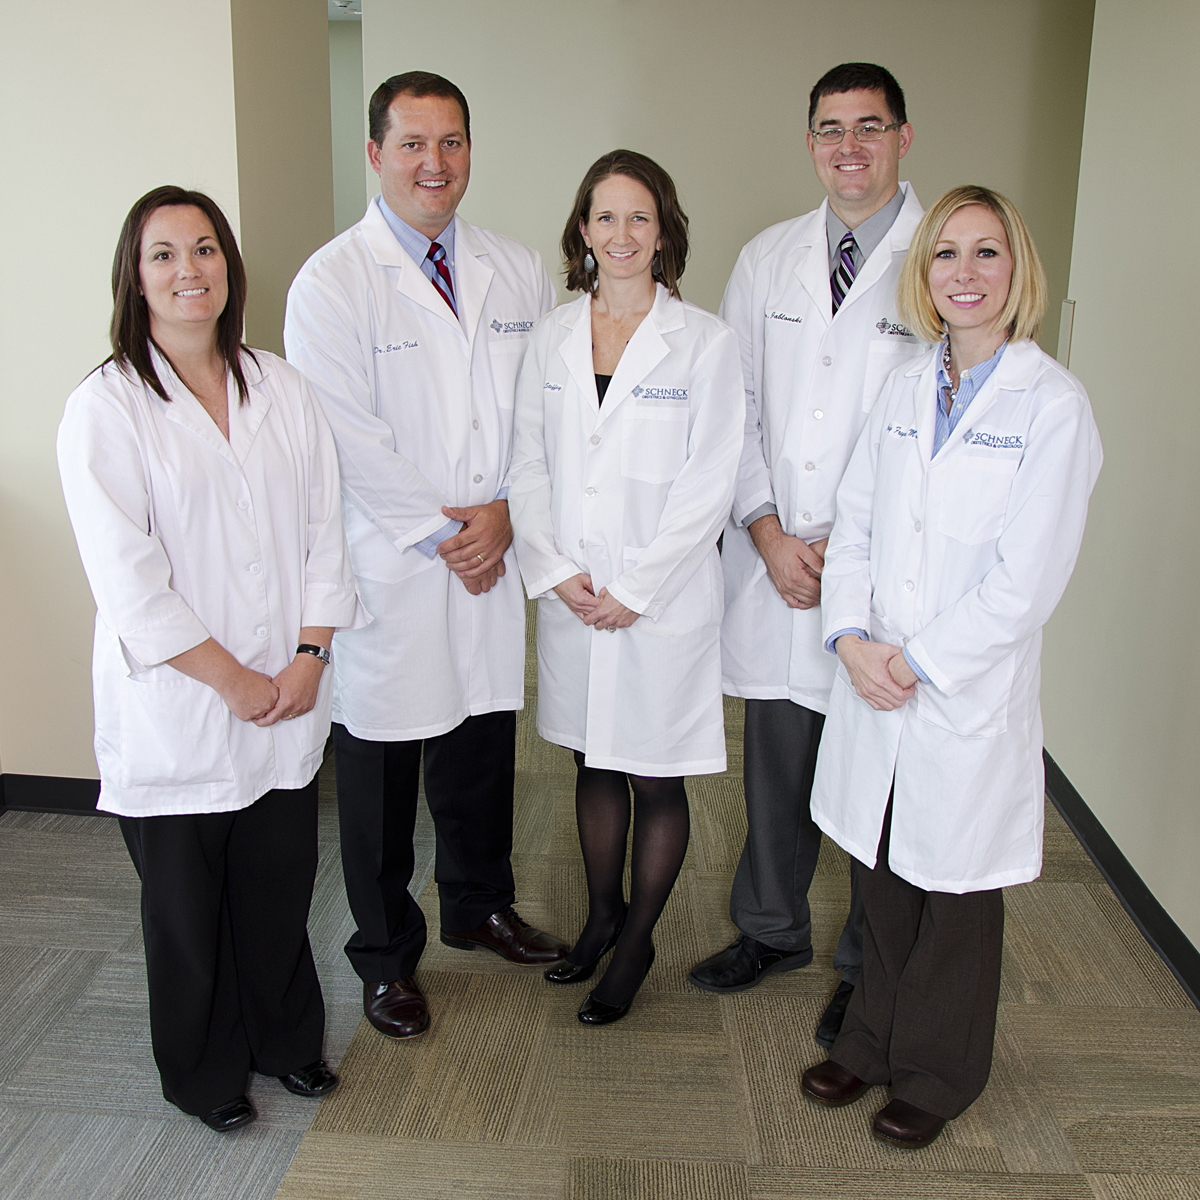 ob practices at chaudhary group in Triangle physicians for women and midwifery is a comprehensive obstetrics and gynecology practice in cary, nc caring women of all ages.